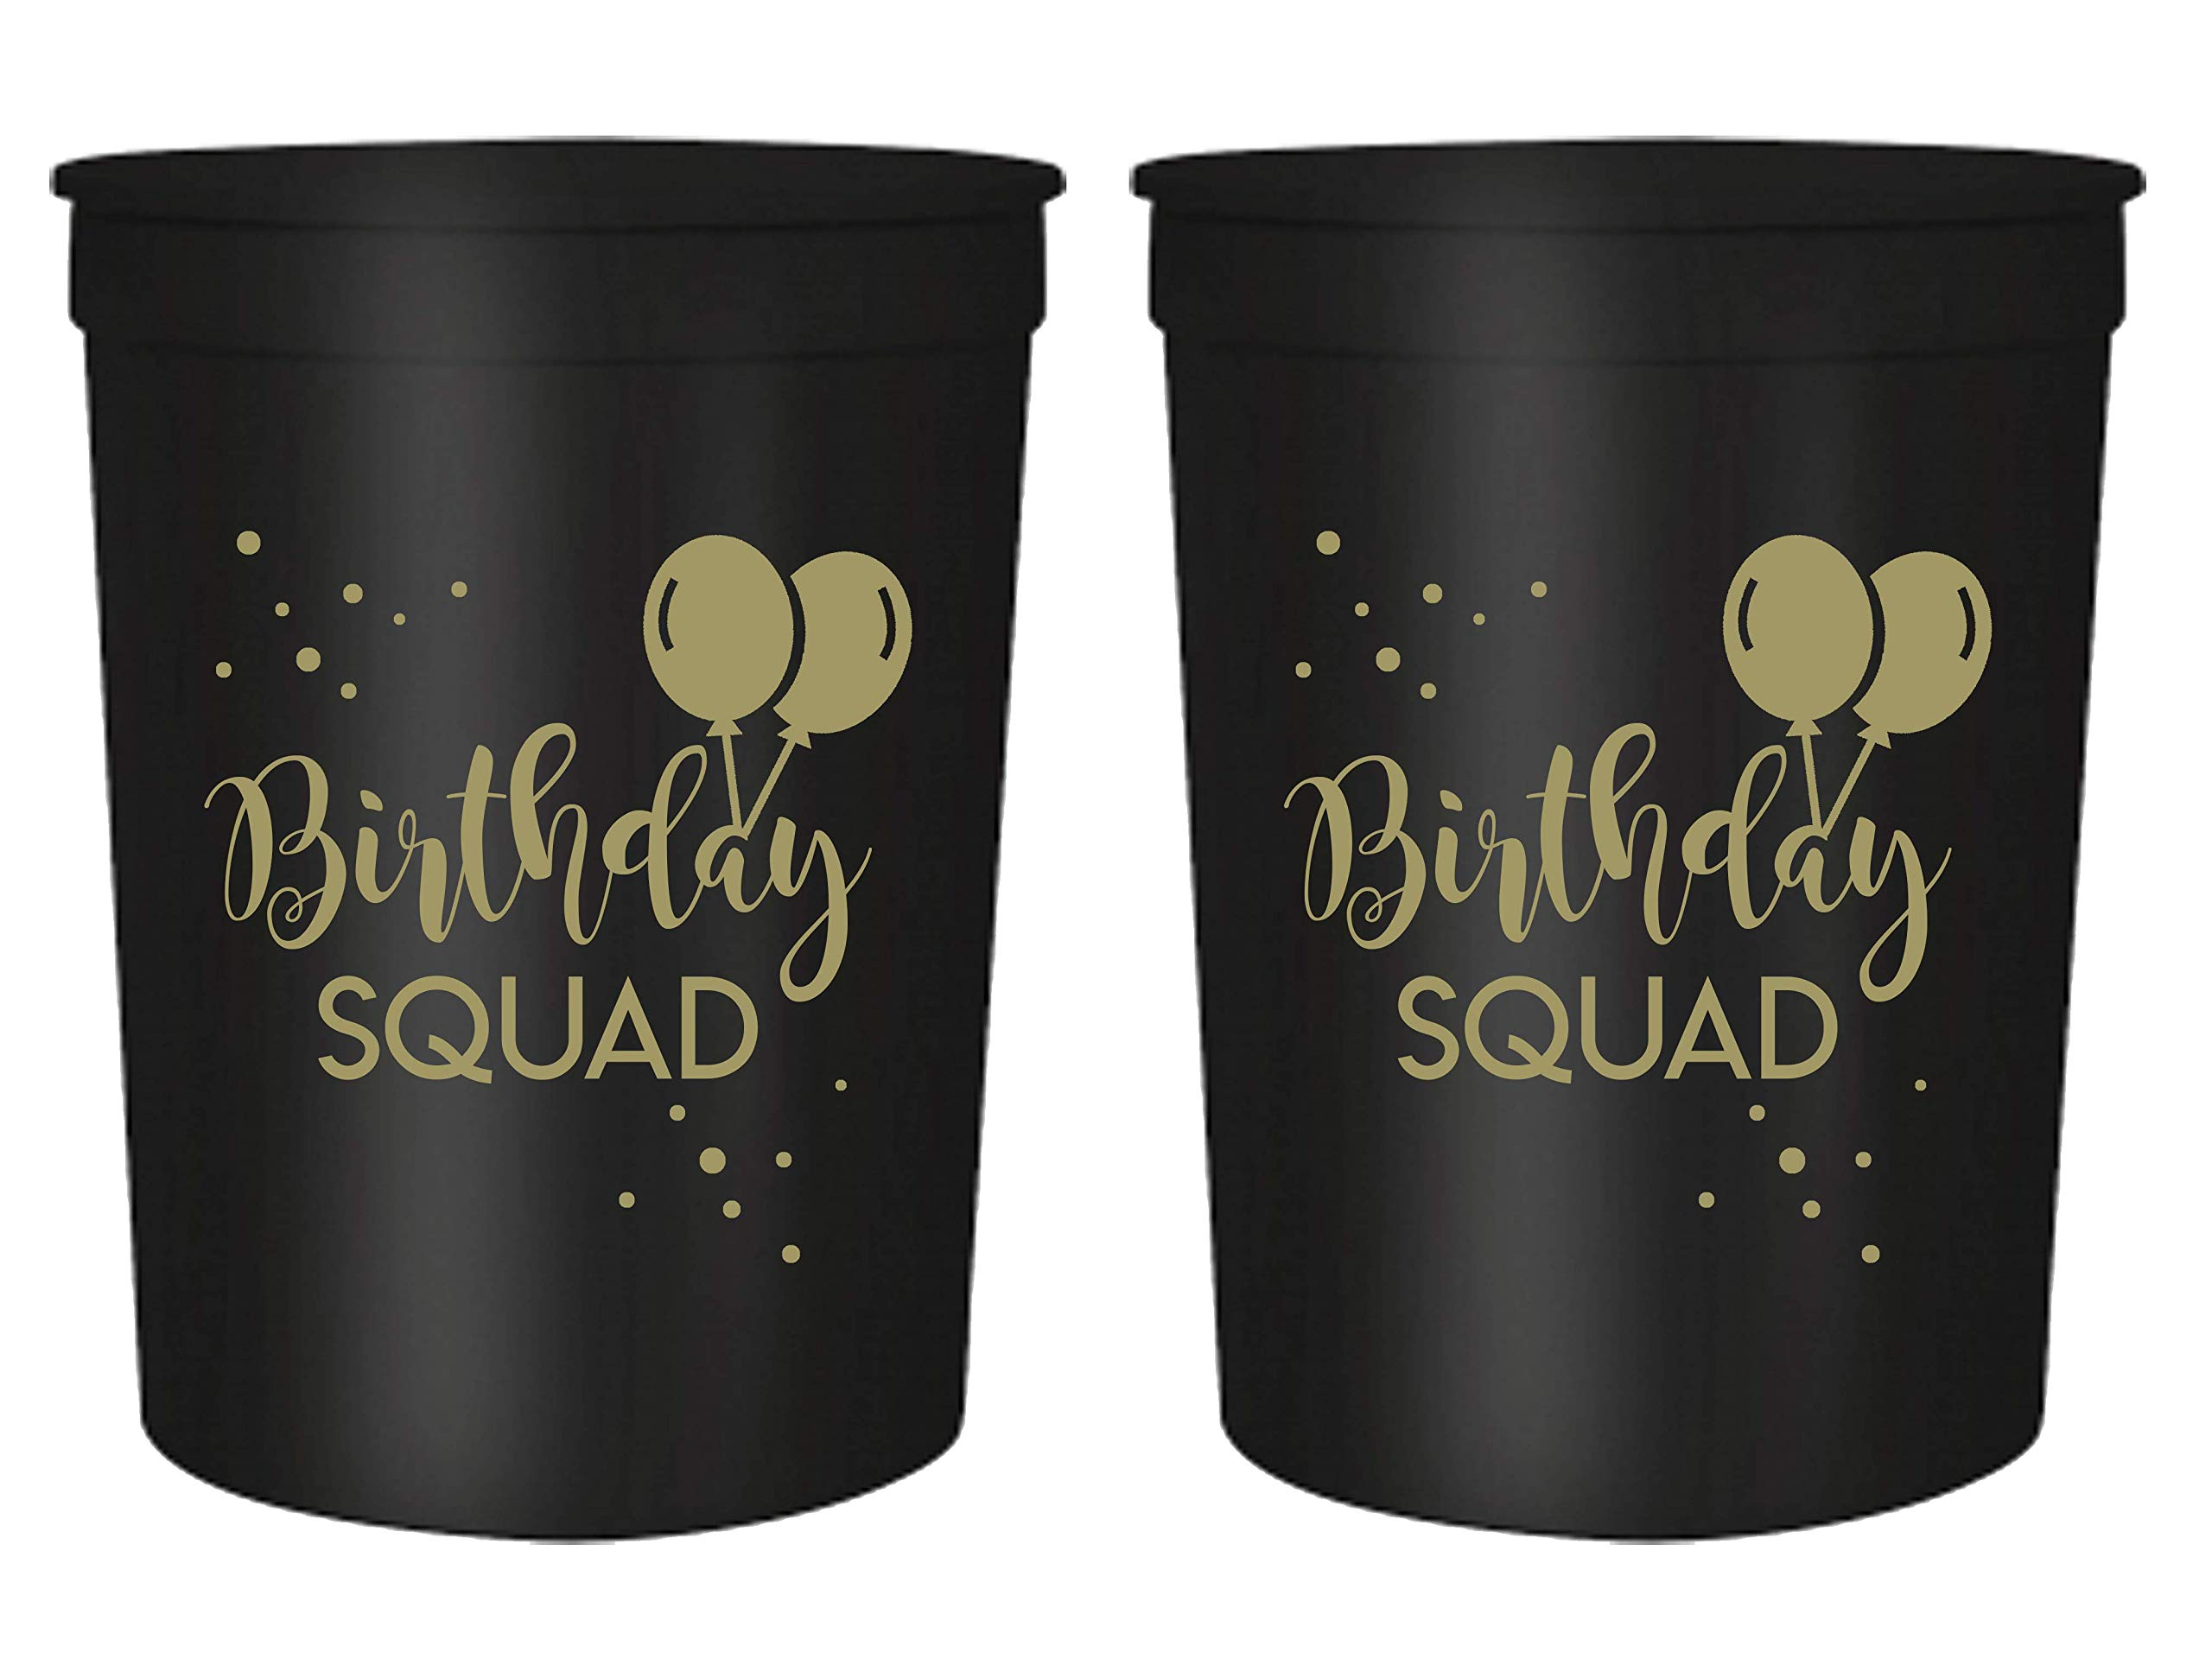 Birthday Squad Party Cups, Set of 12, 16oz Birthday Stadium Cups, Perfect for Birthday Parties, Birthday Decorations, All Birthday Events! (Black)